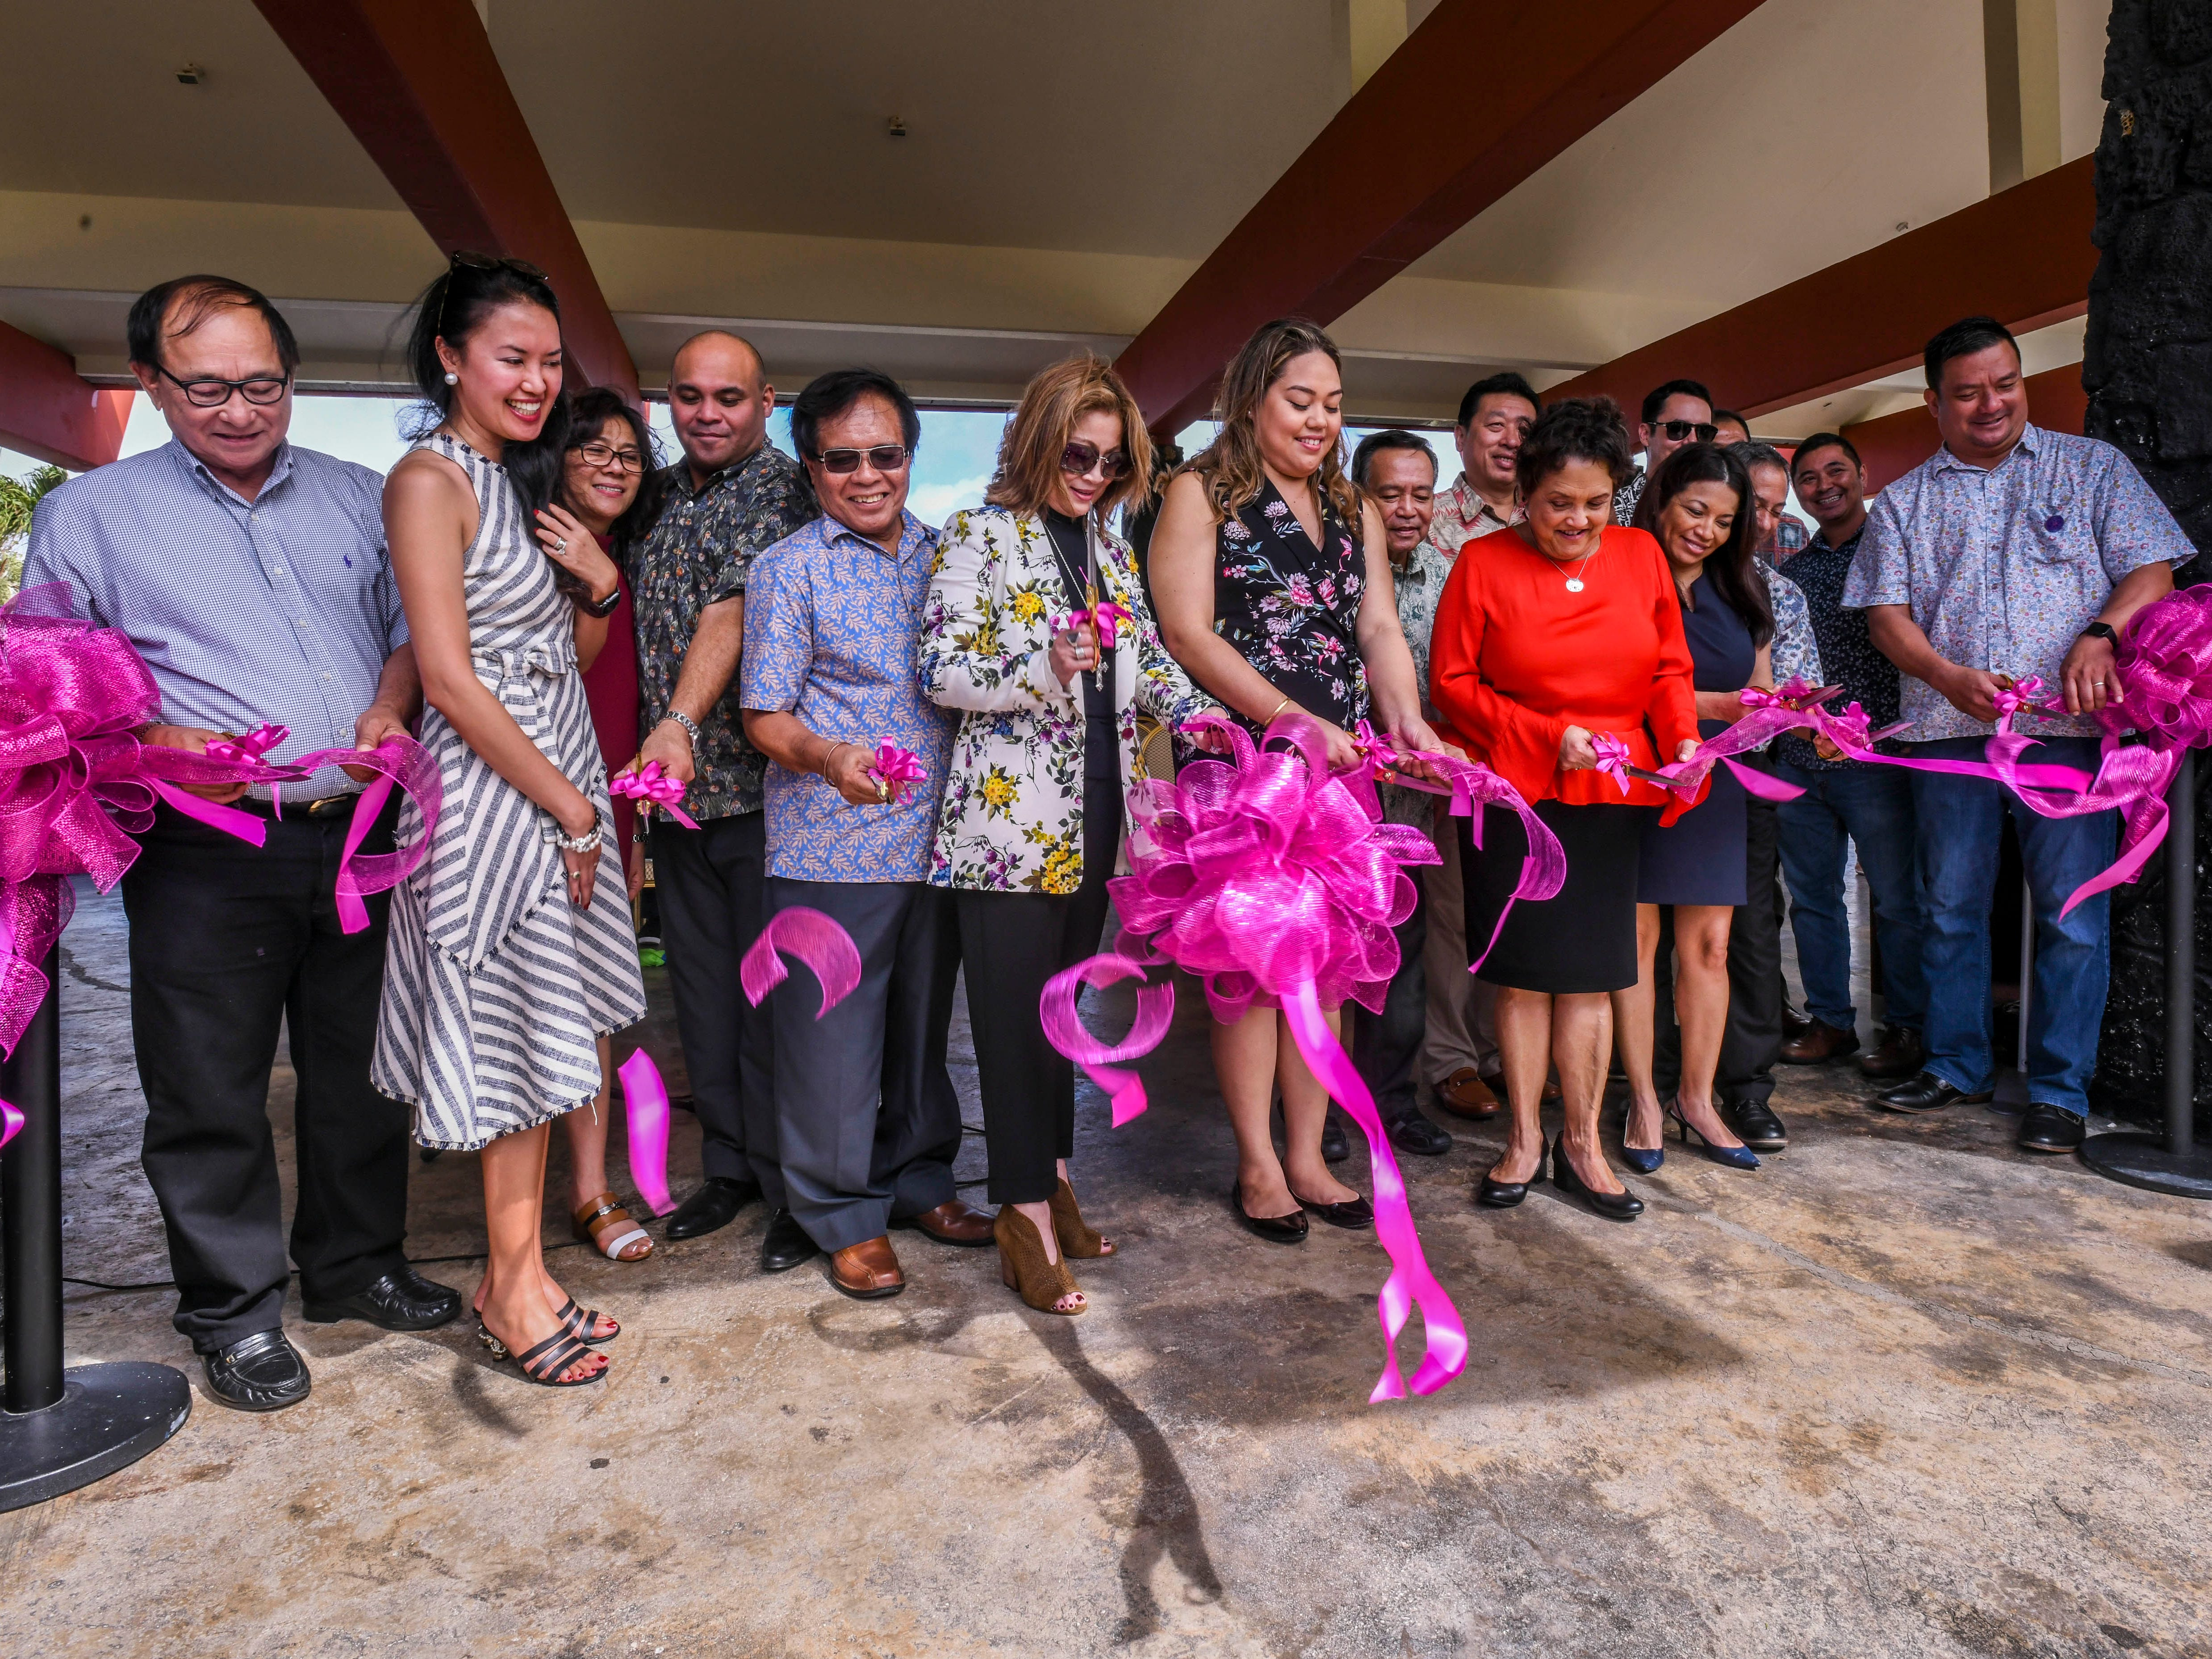 A ribbon is cut to celebrate the completion of the Rotary Club of Tumon Bay's Adopt-a-Shelter project during a unveiling ceremony at the Gov. Joseph Flores Memorial Park in Tumon on Friday, Jan. 18, 2019.